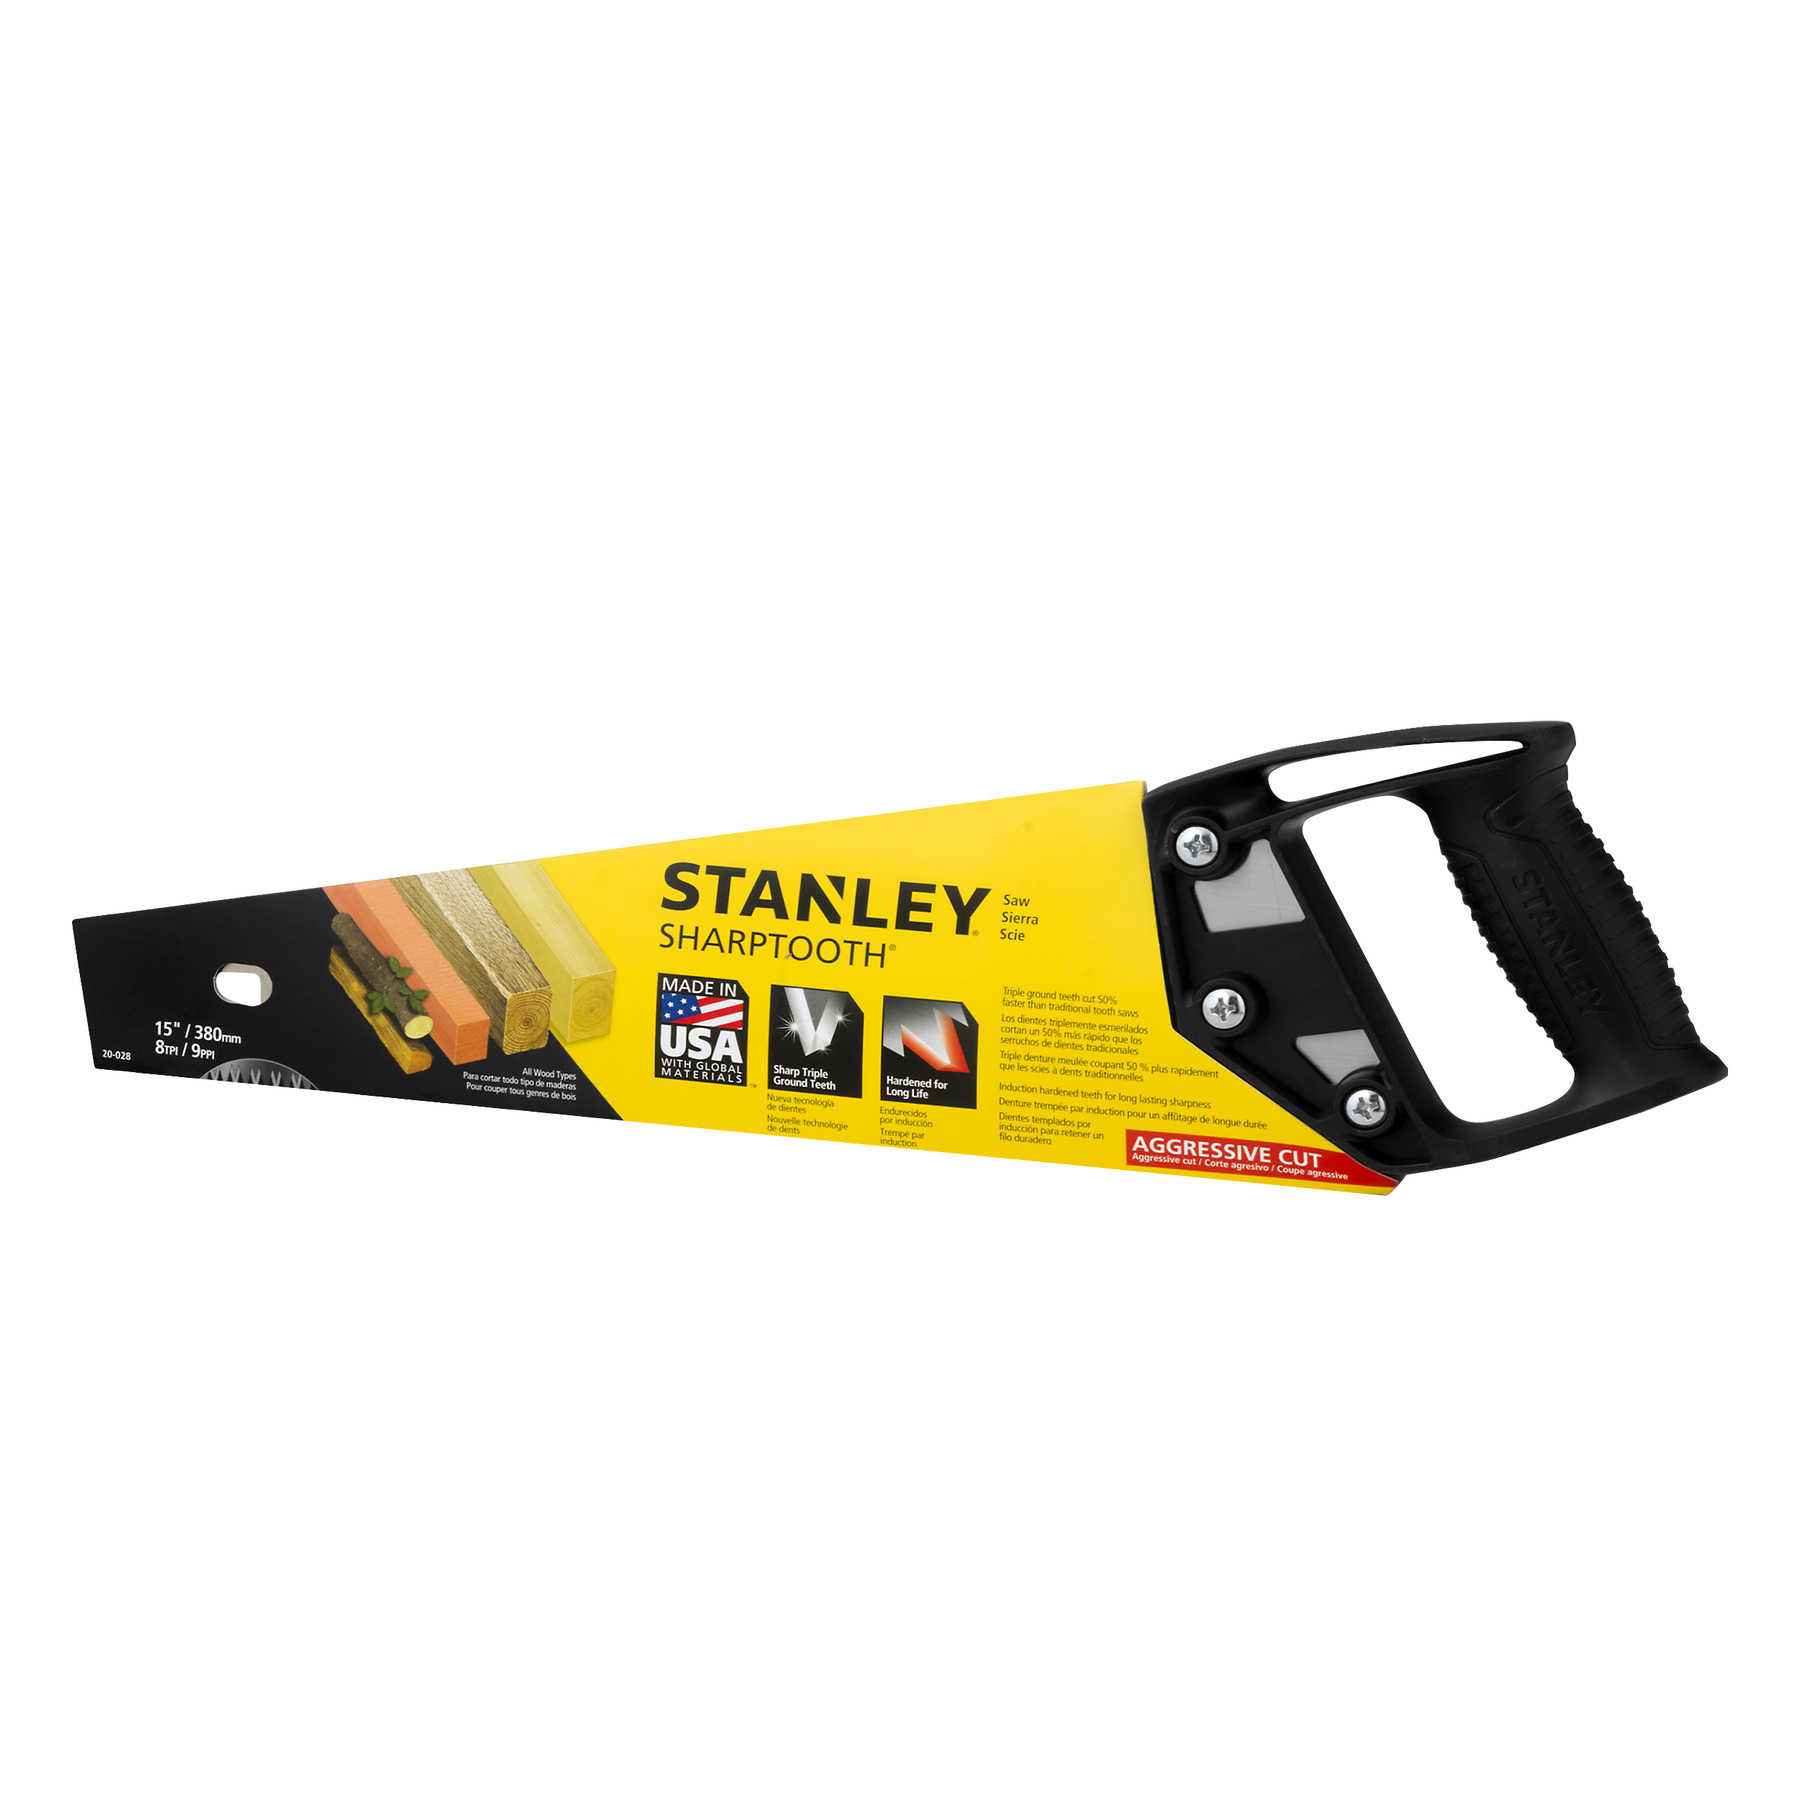 Stanley Sharp Tooth Saw, 1.0 CT